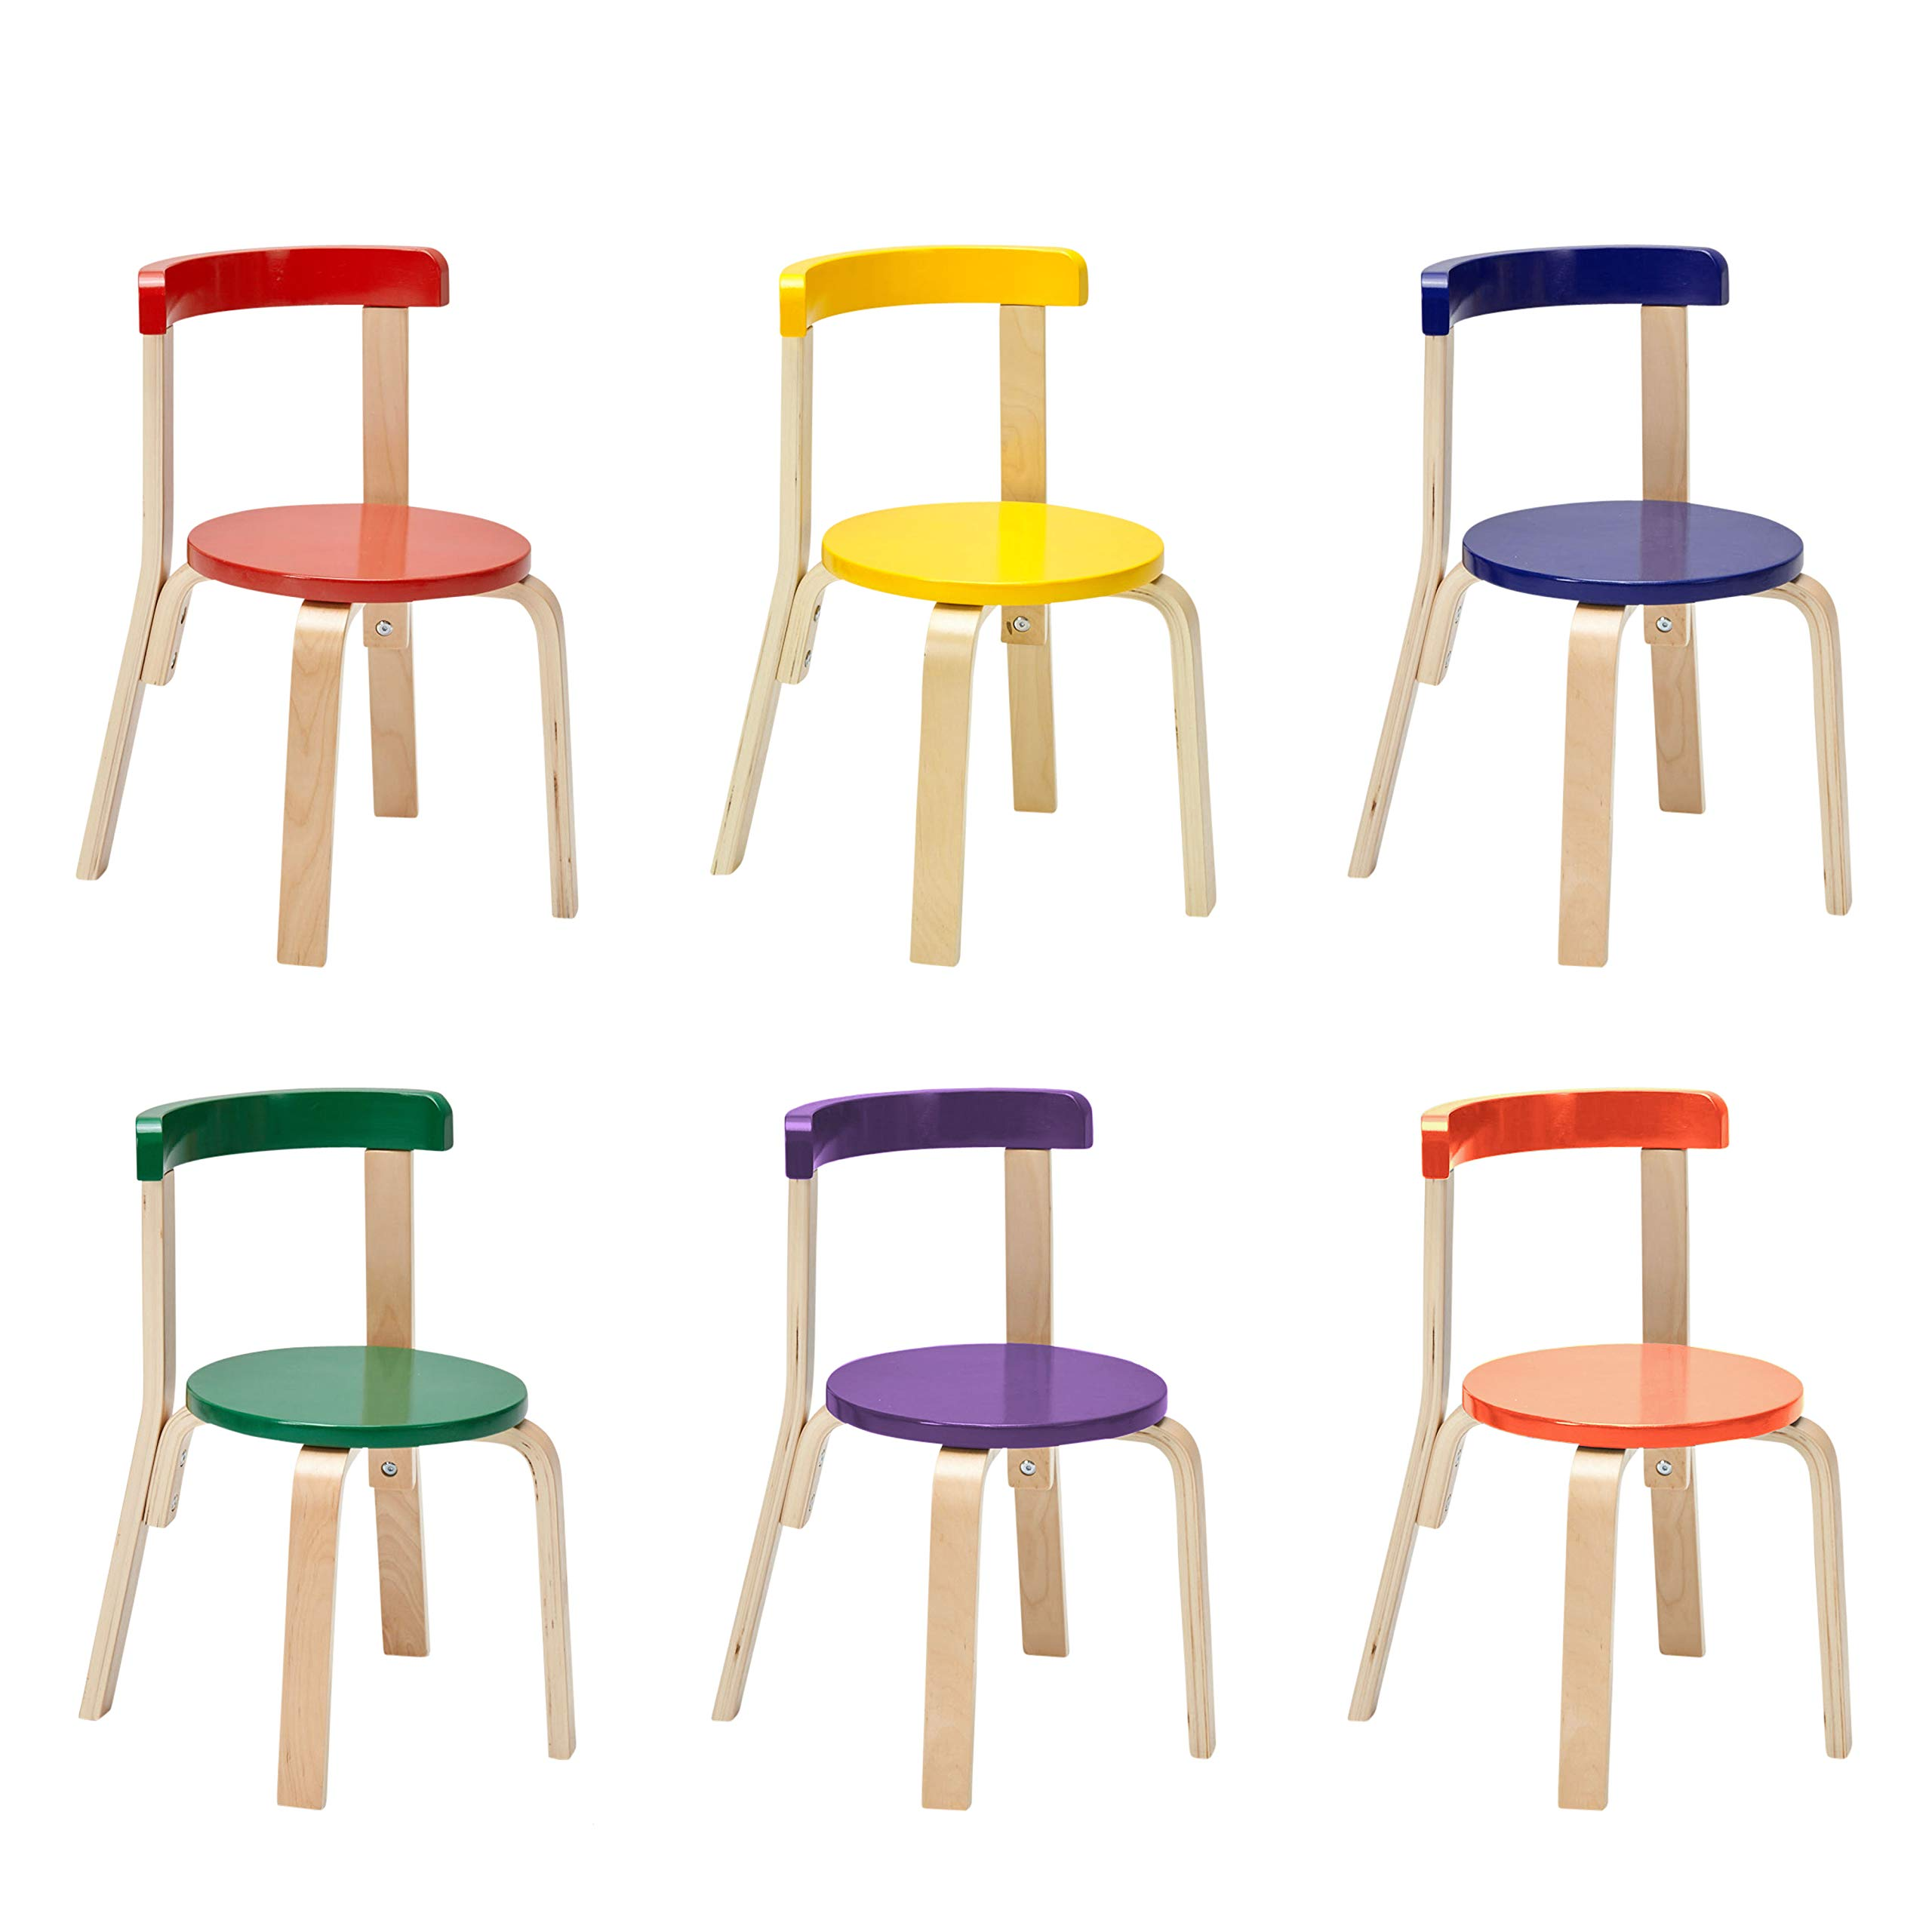 ECR4Kids Bentwood Curved Back Chair 6-Pack, Sturdy Backed Stools for Kids and Toddlers, Assorted Colors (Set of 6)